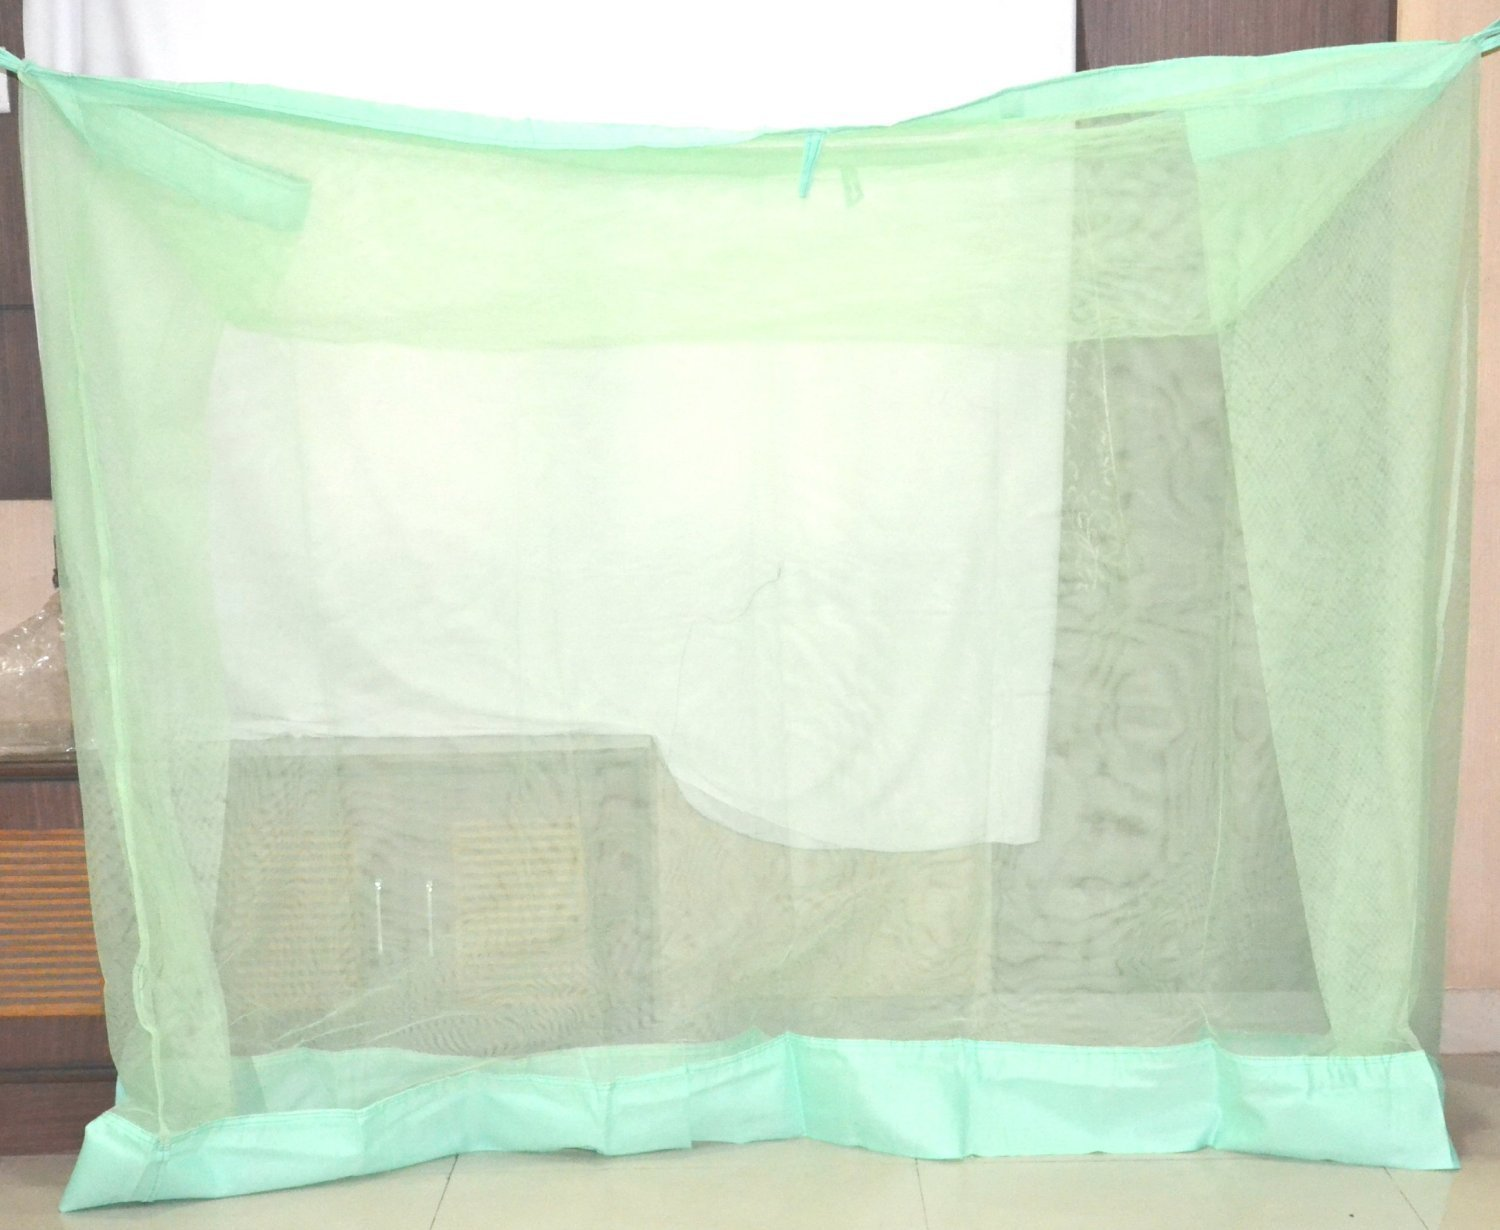 Amazon price history for 10x6.5 FT Green Colour- Mosquito Net for King Size Bed Deluxe Poly Cotton Material - Mosquito Net for Bedroom | Queen (King Size Bed)